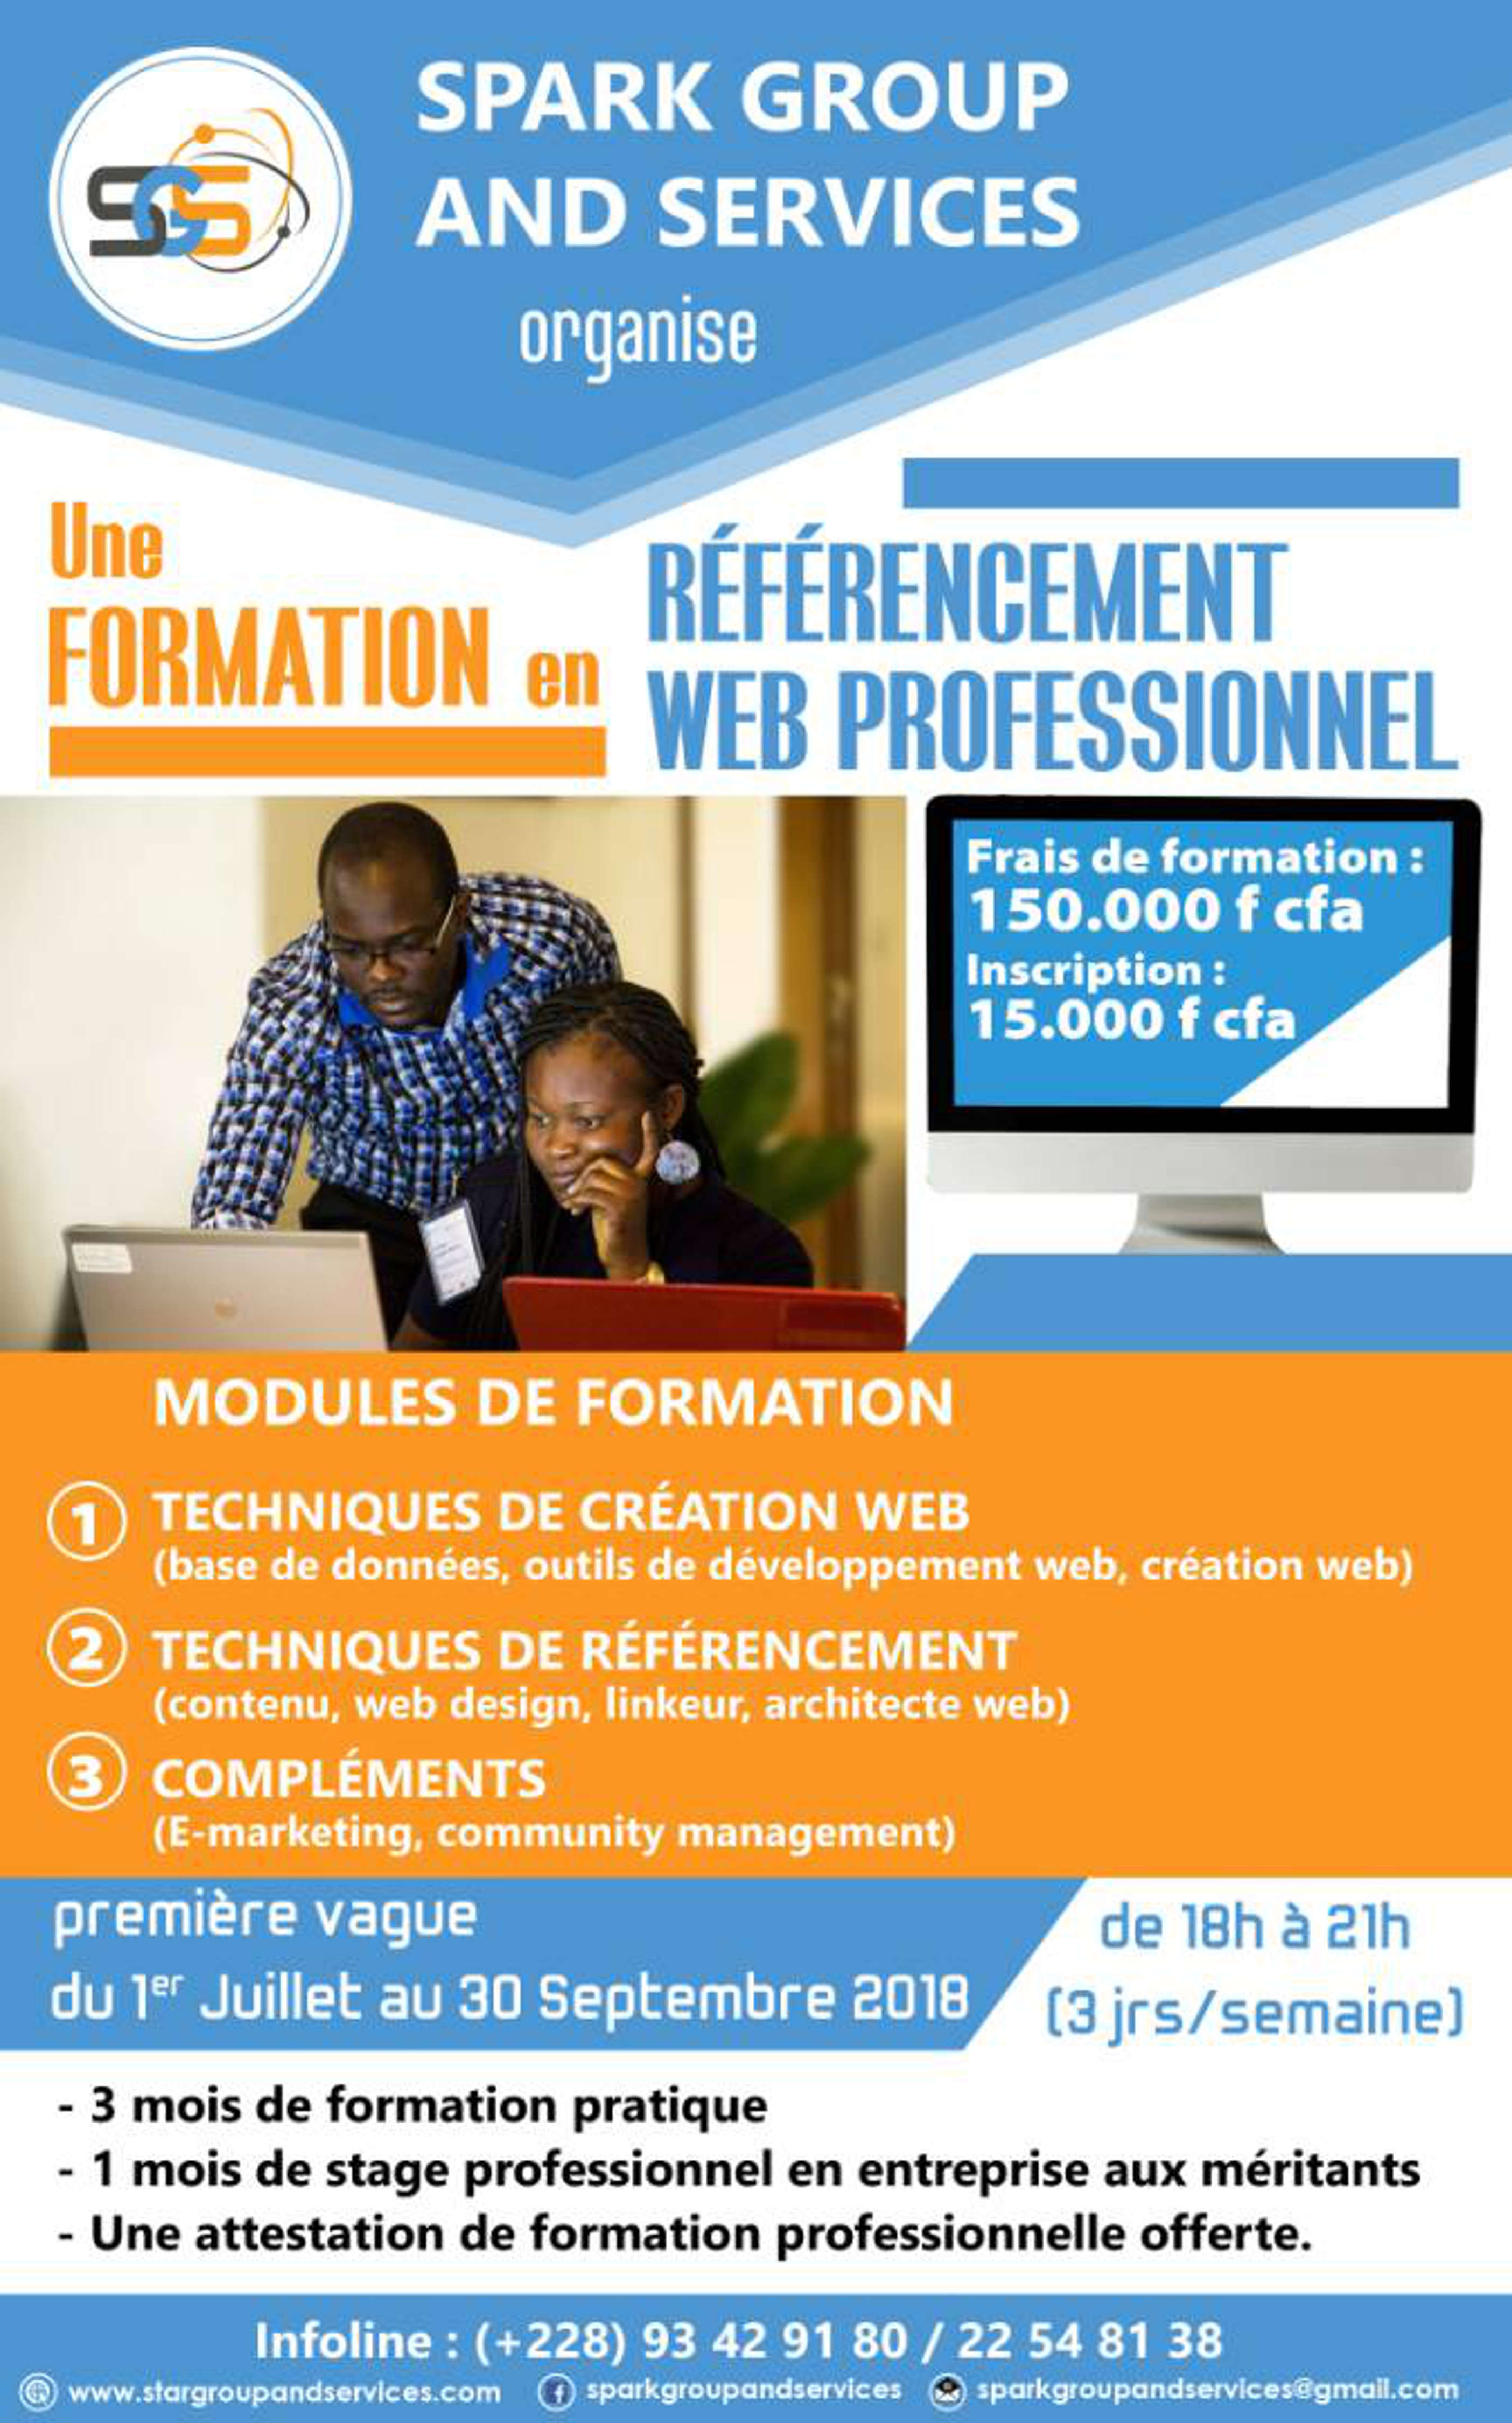 FORMATION EN REFERENCEMENT WEB PROFESSIONNEL